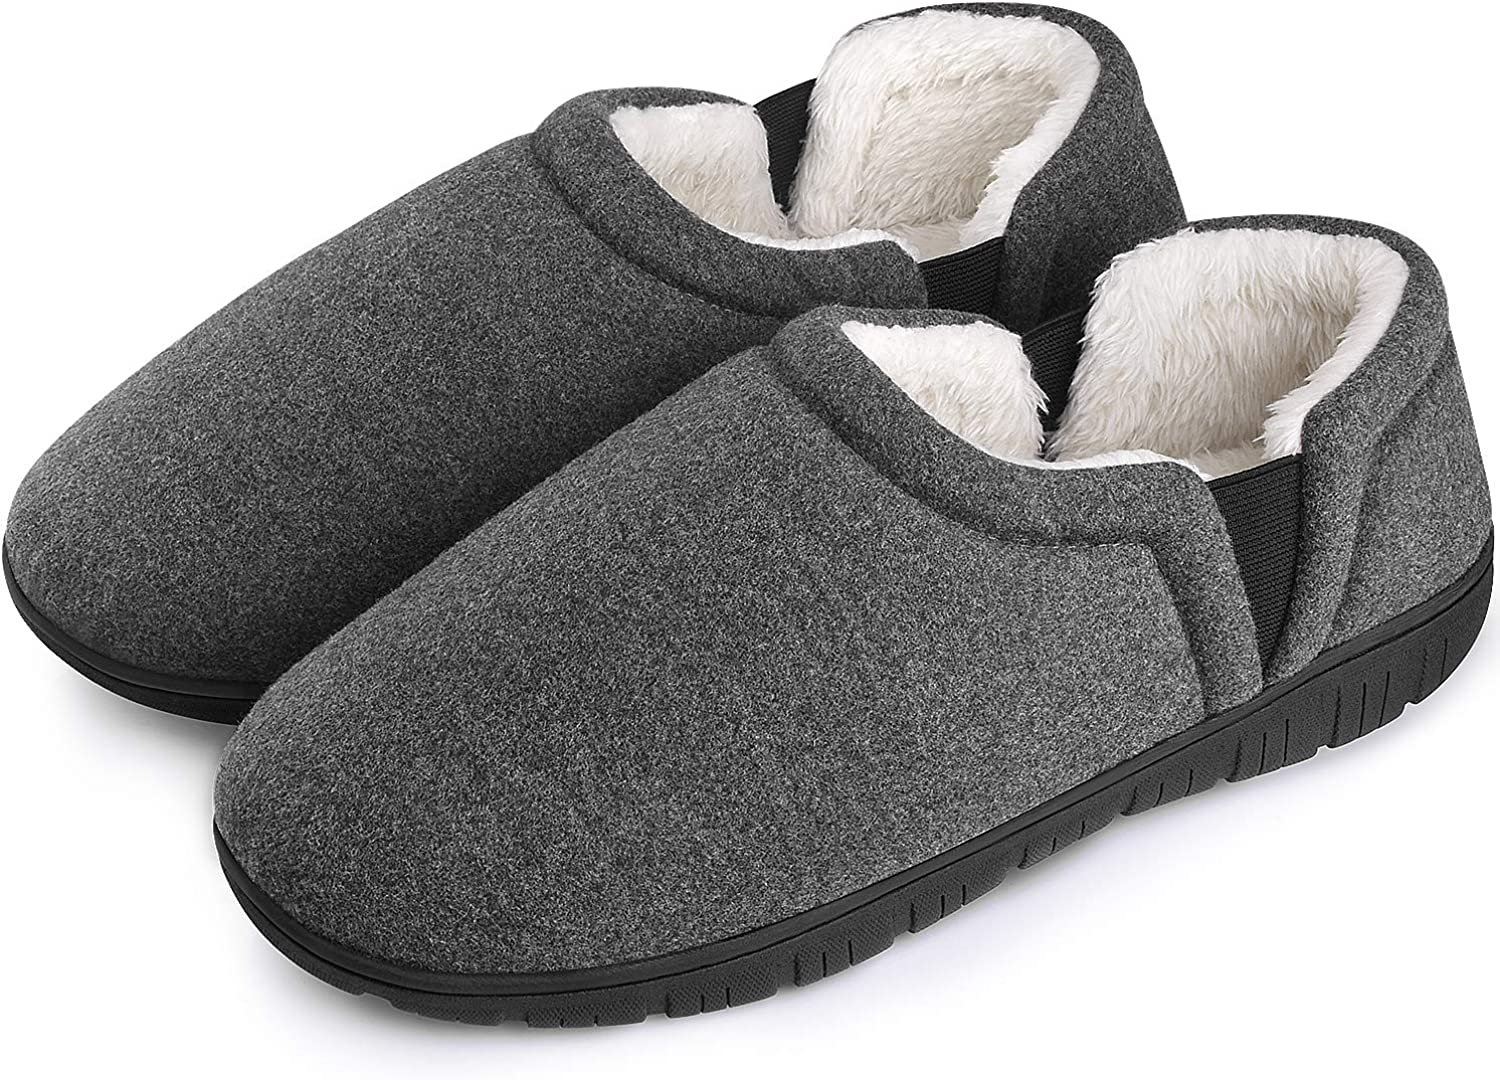 Homitem Mens Slippers Cozy Memory Foam with A surprise price is realized Dual Indefinitely Medial